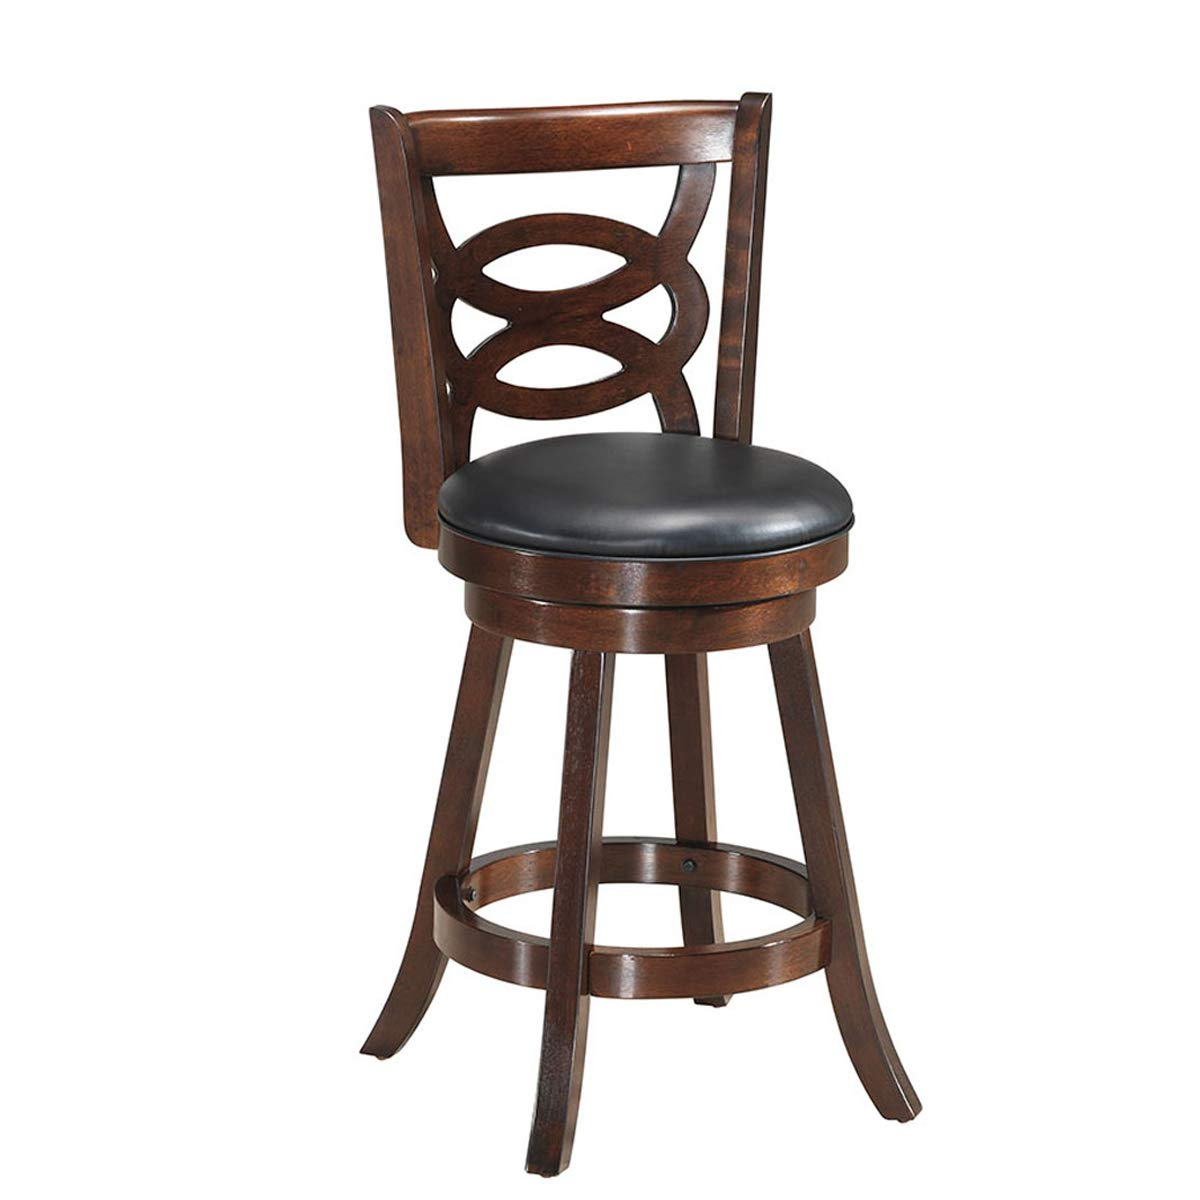 COSTWAY Vintage Bar Stools, Accent Wooden Back Swivel Dining Chair, Fabric Upholstered 360 Degree Swivel, PVC Cushioned Seat, Perfect for Dining and Living Room (Height 24'') by COSTWAY